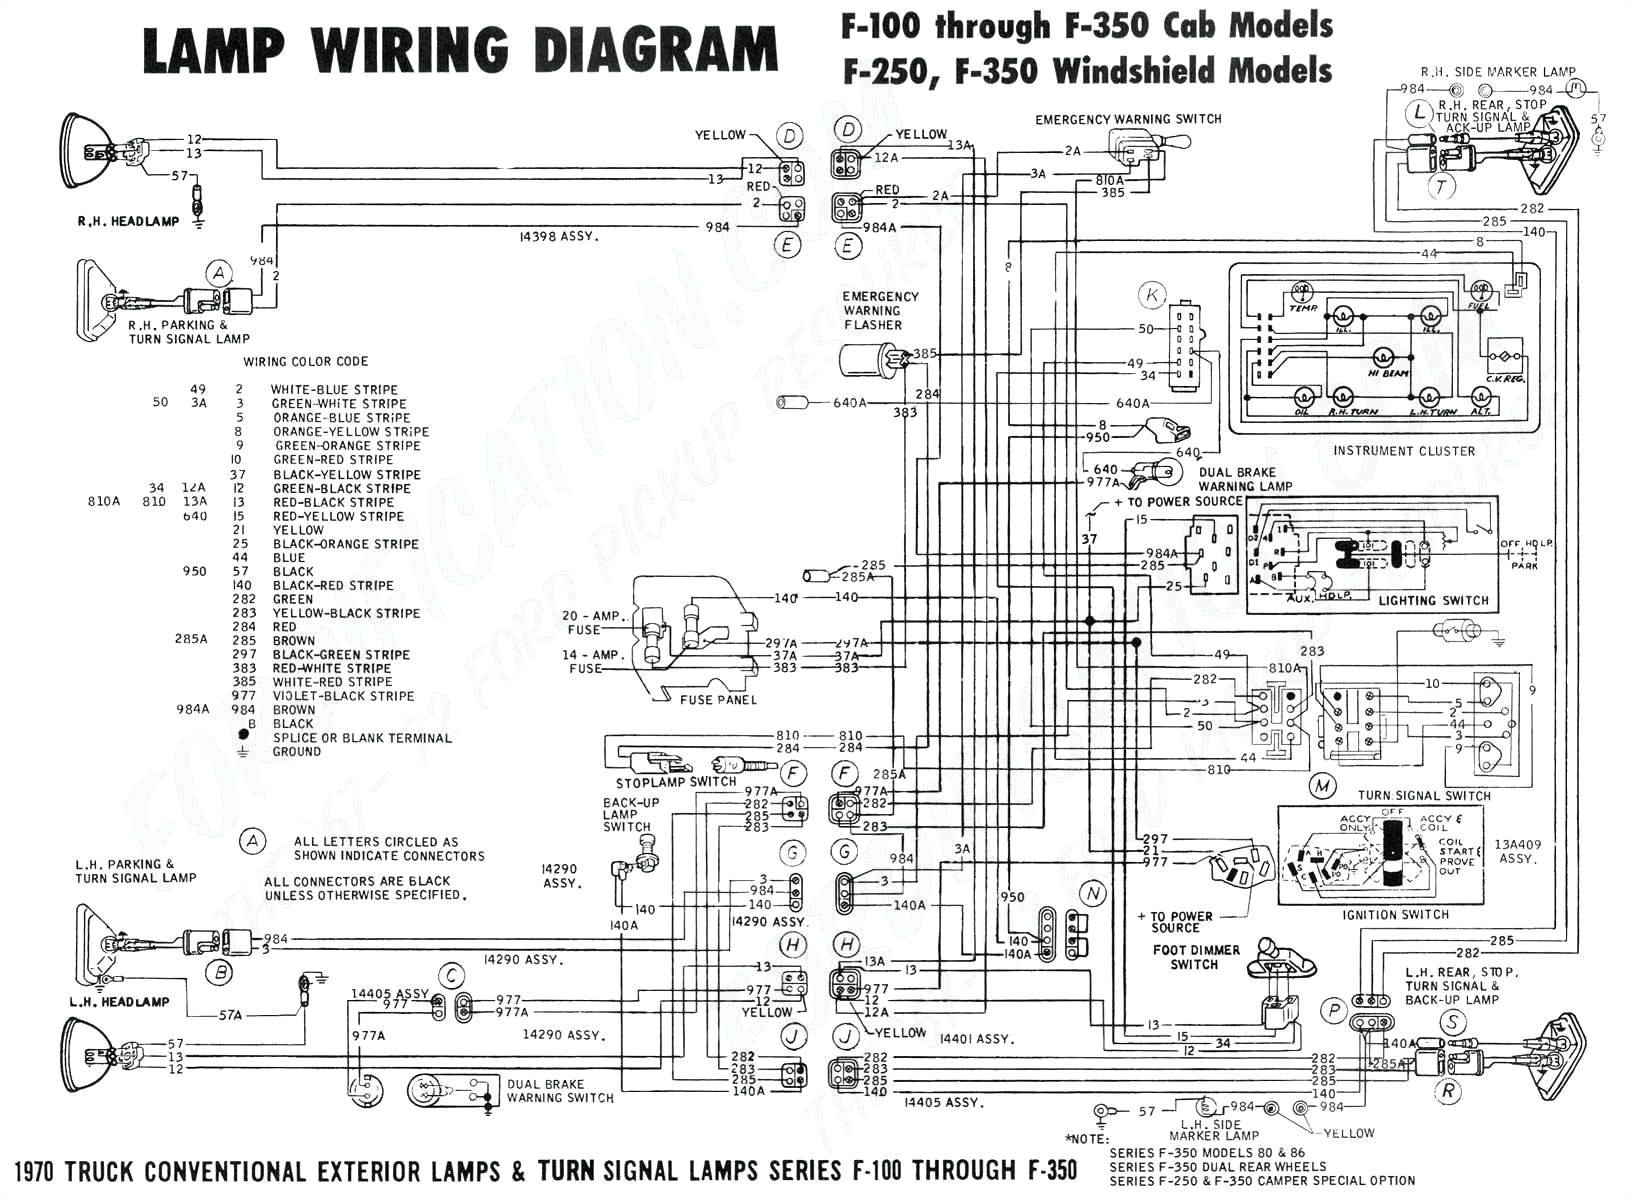 Race Car Alternator Wiring Diagram V8s10org O View topic Race Car Alternator Wiring Wiring Diagram Page